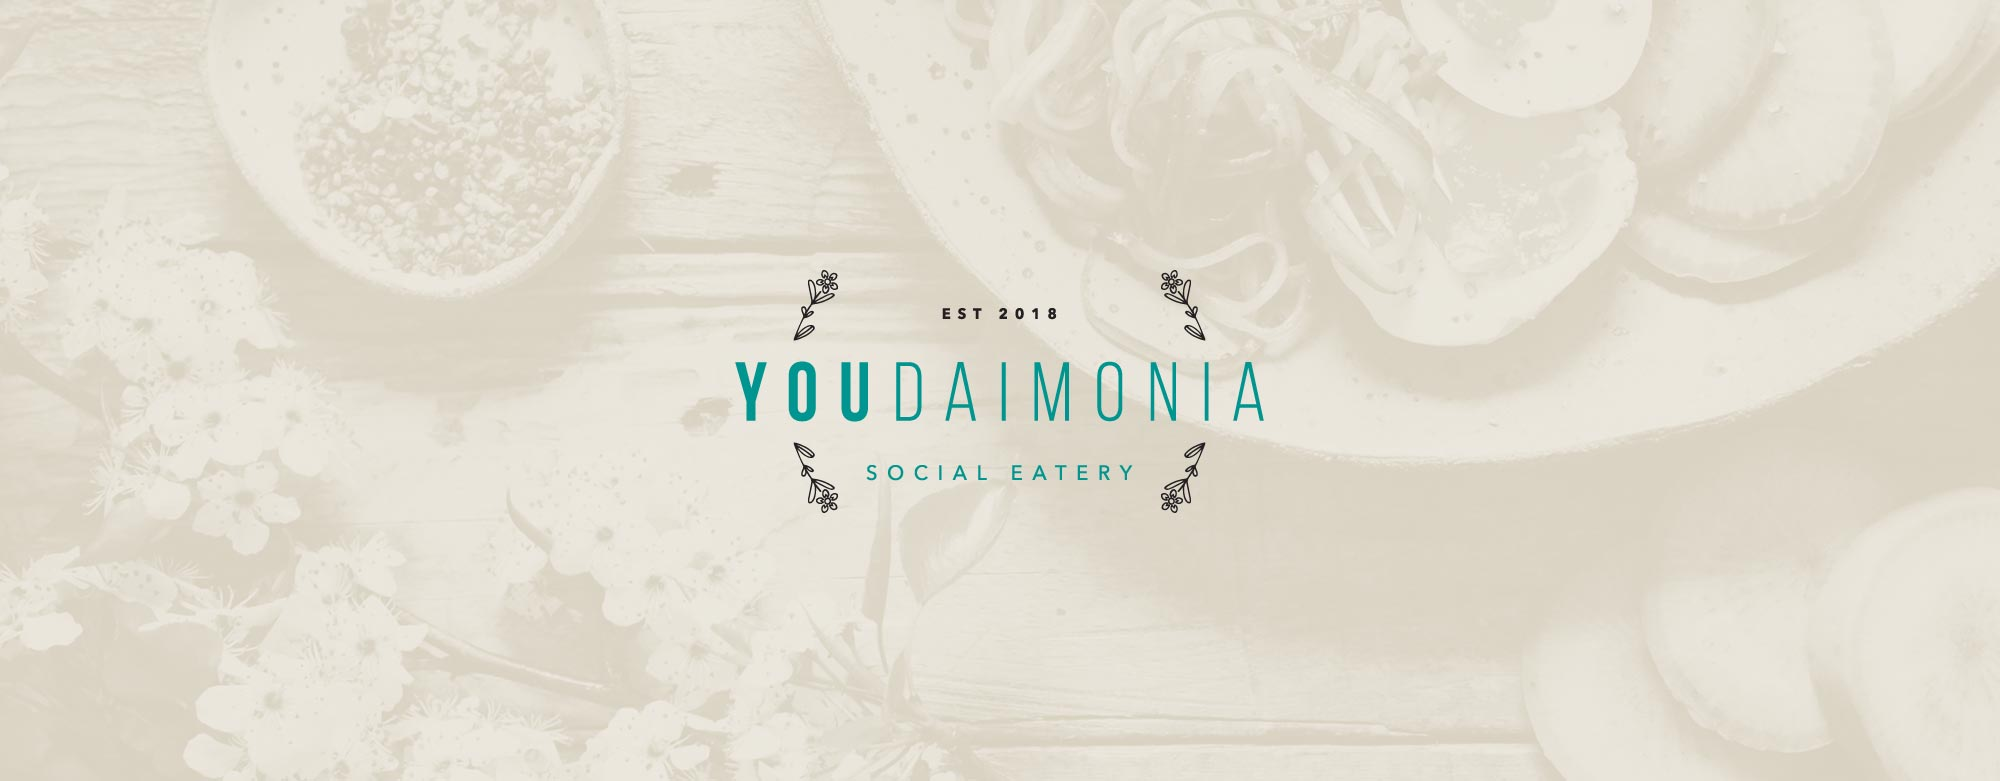 Youdaimonia restaurant logo and brand identity design by Lisa Furze